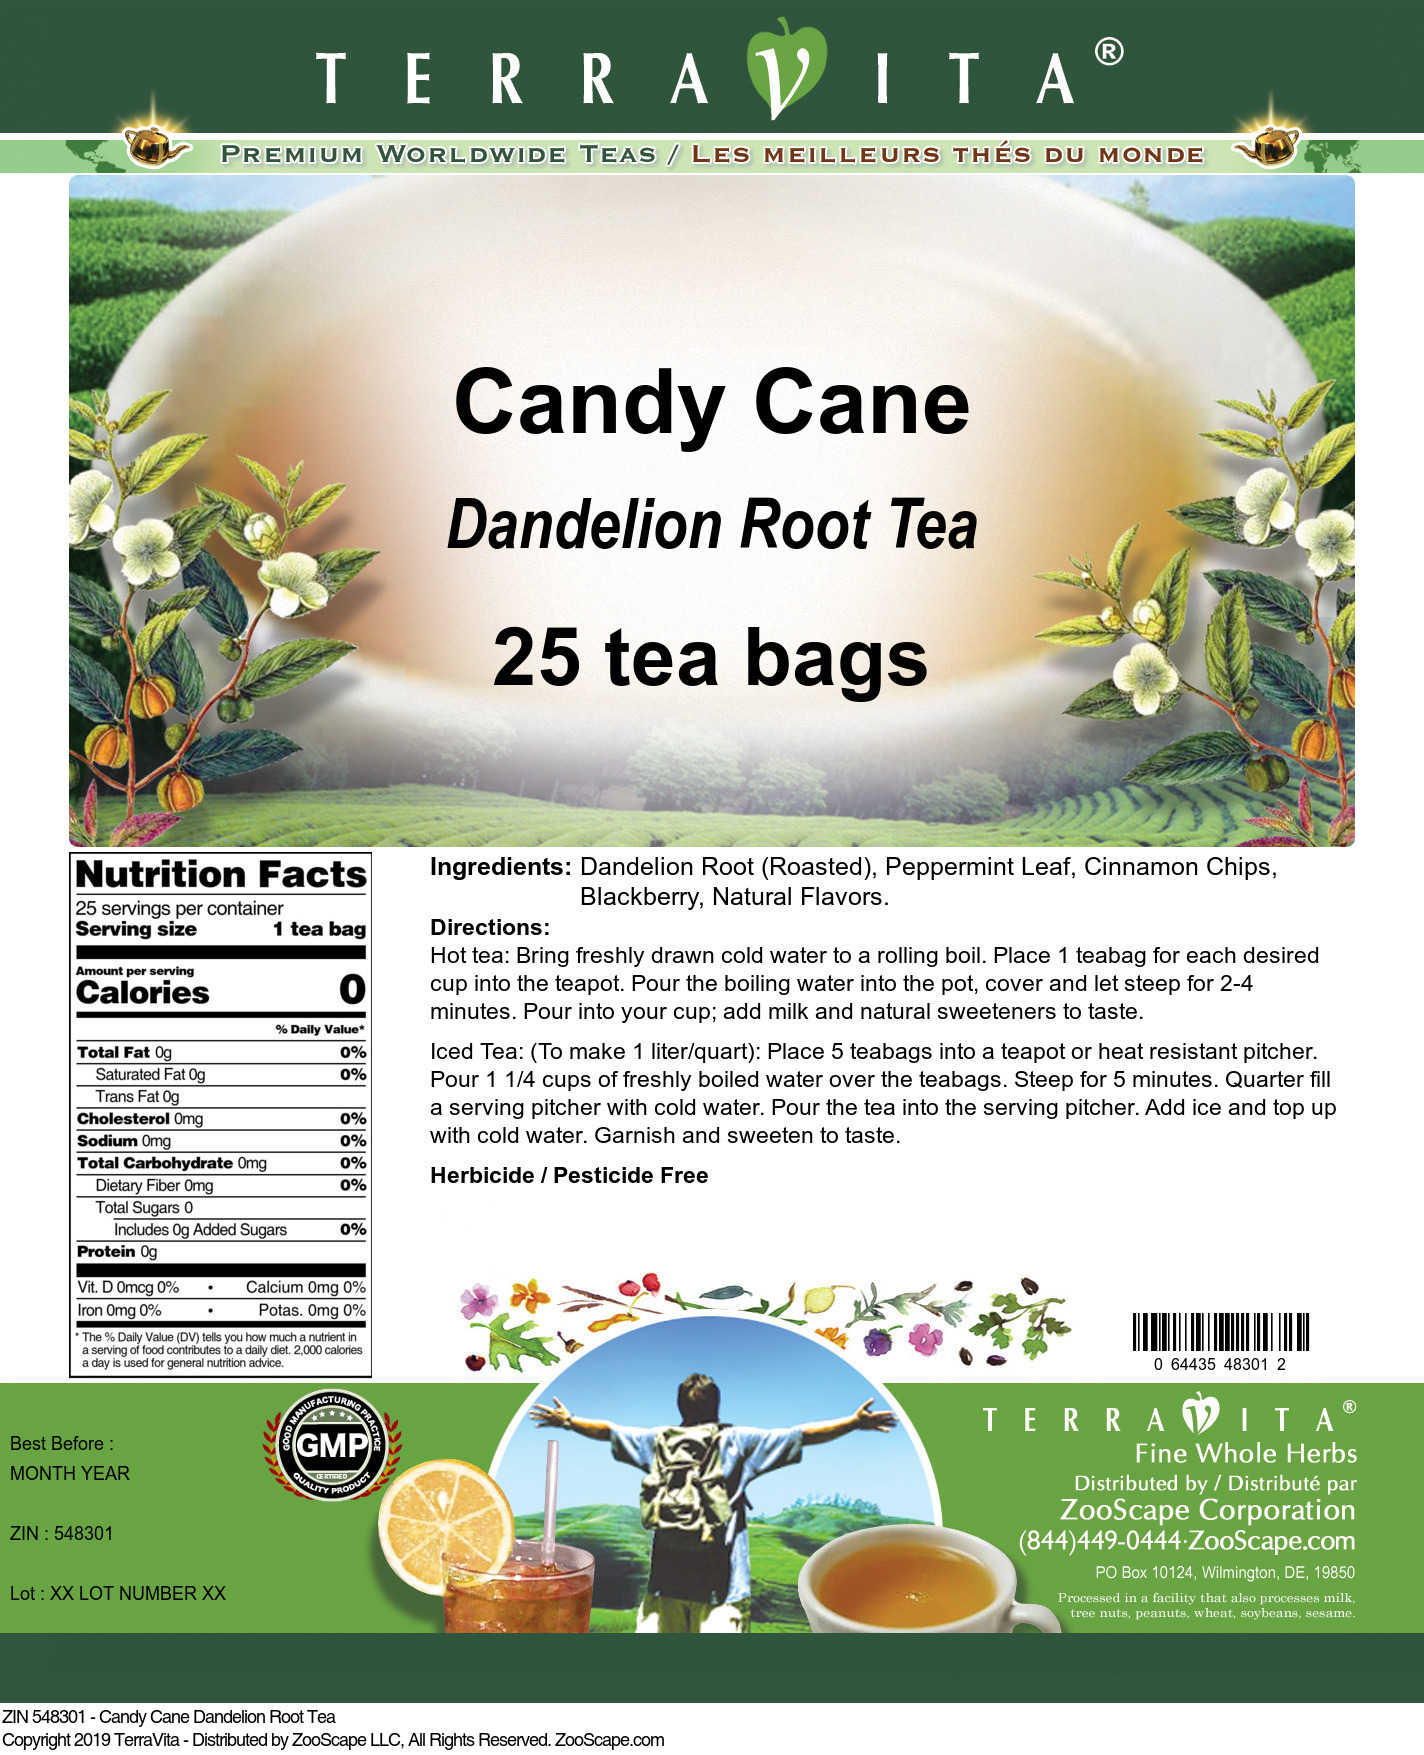 Candy Cane Dandelion Root